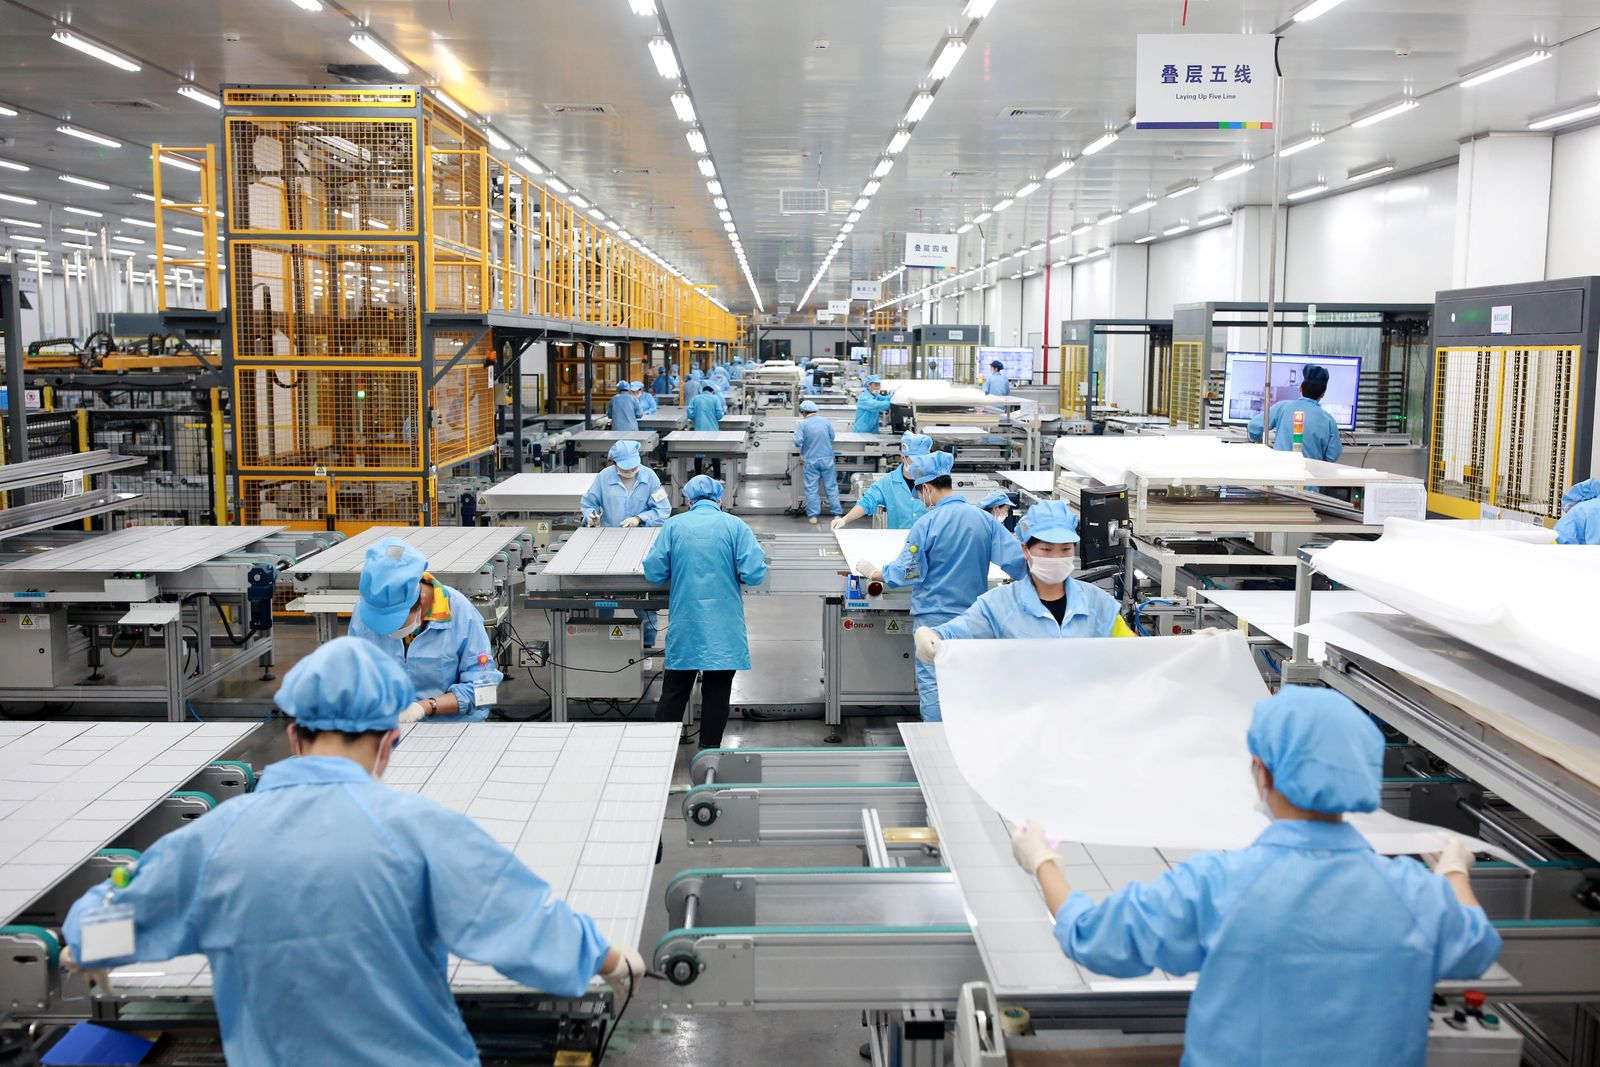 Employees work on photovoltaic solar panels at a factory of Risen Energy in Ningbo